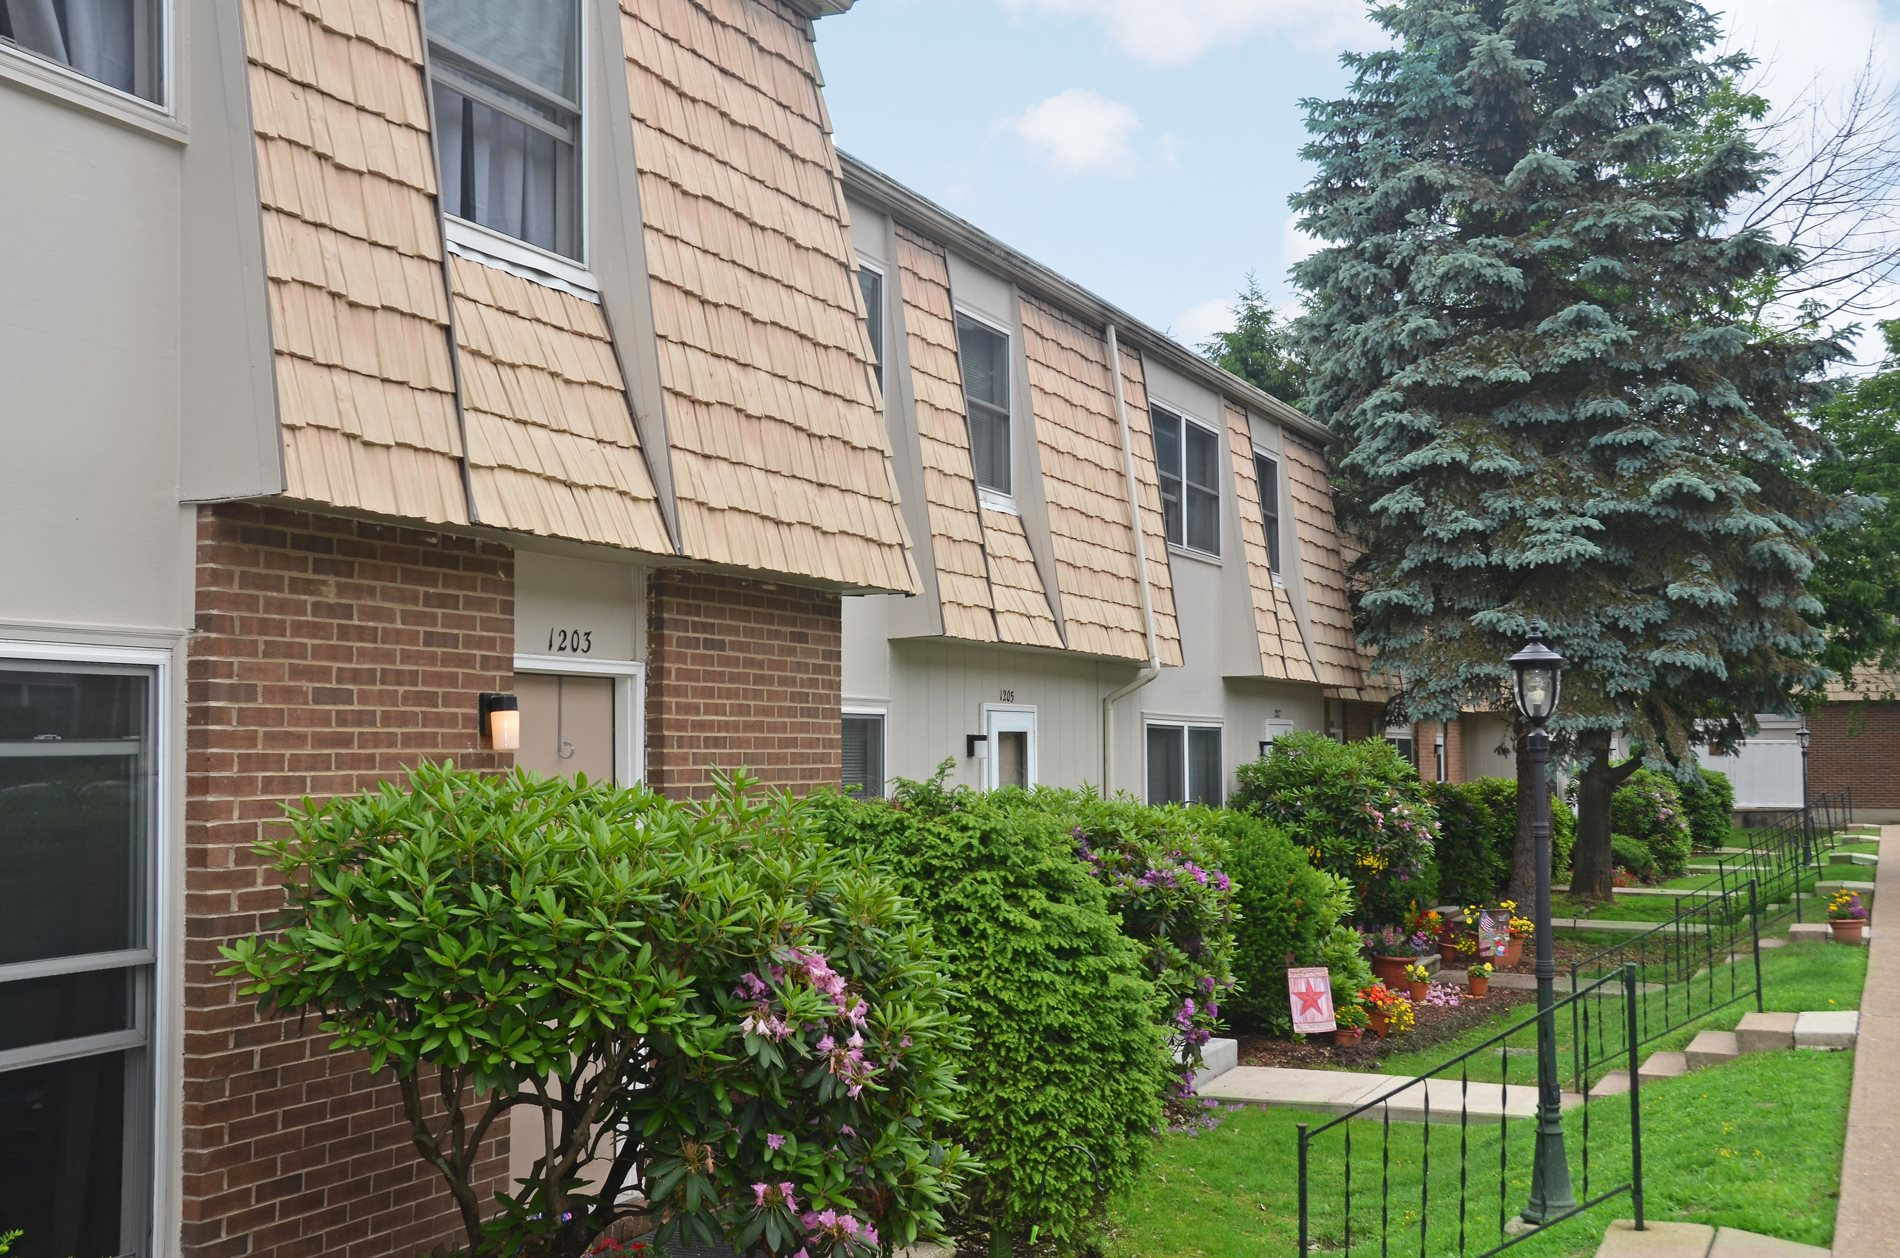 Apartment in Williamsport, PA | Woodland Park | Property Management, Inc.